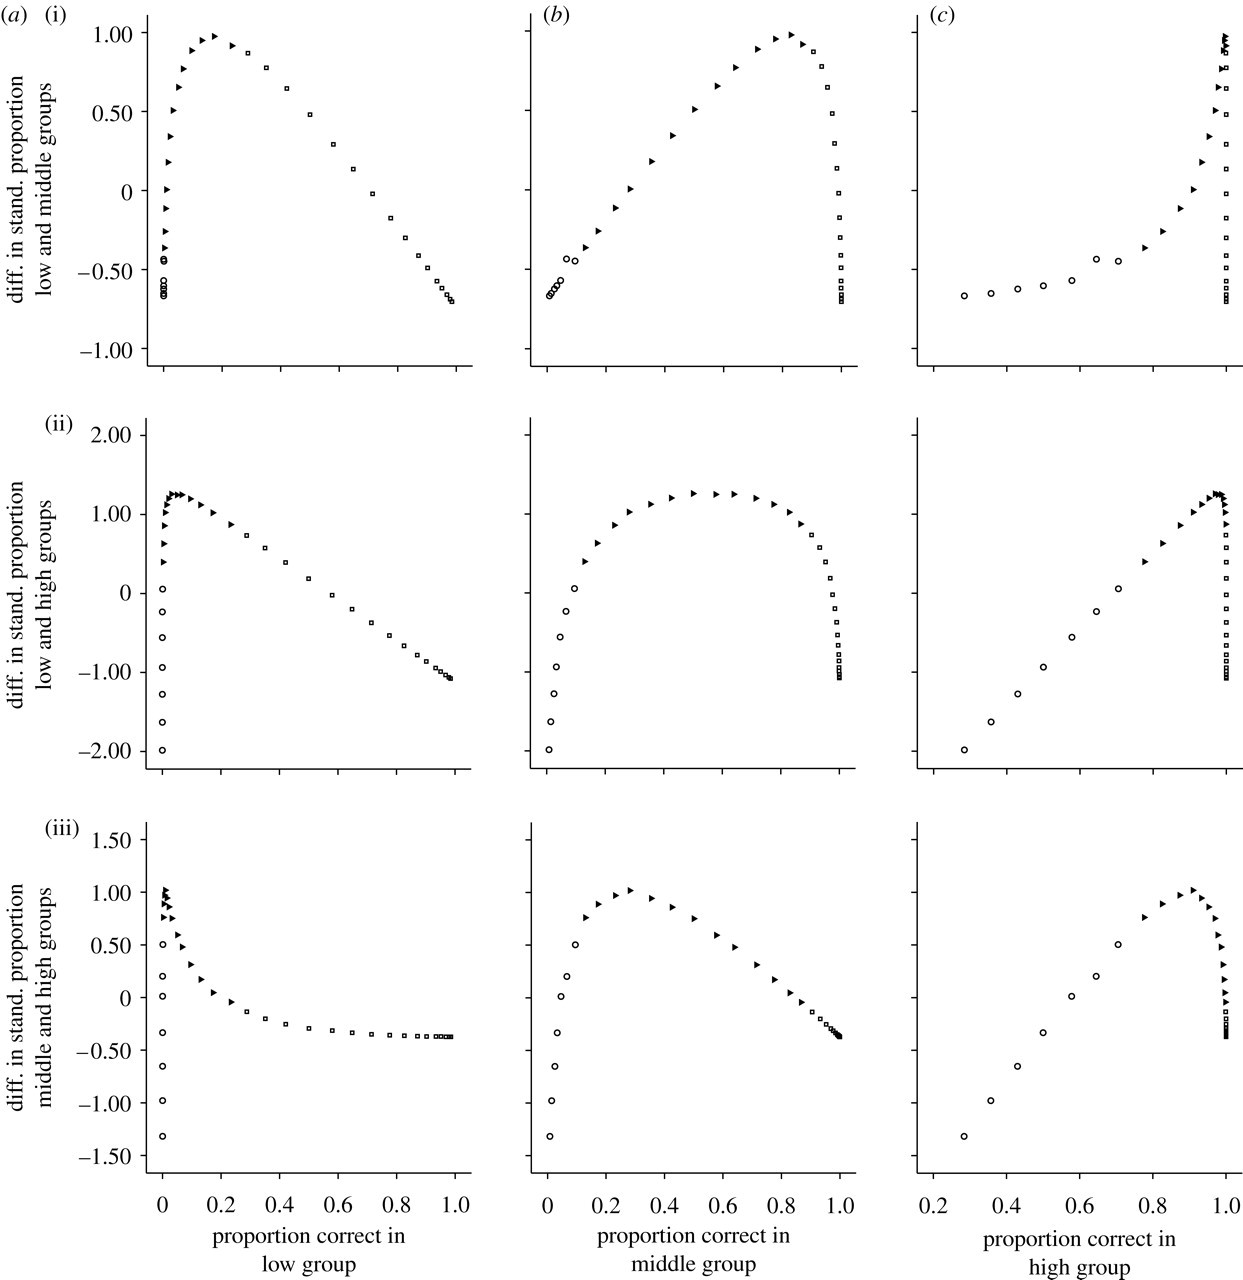 Group differences in the heritability of items and test scores